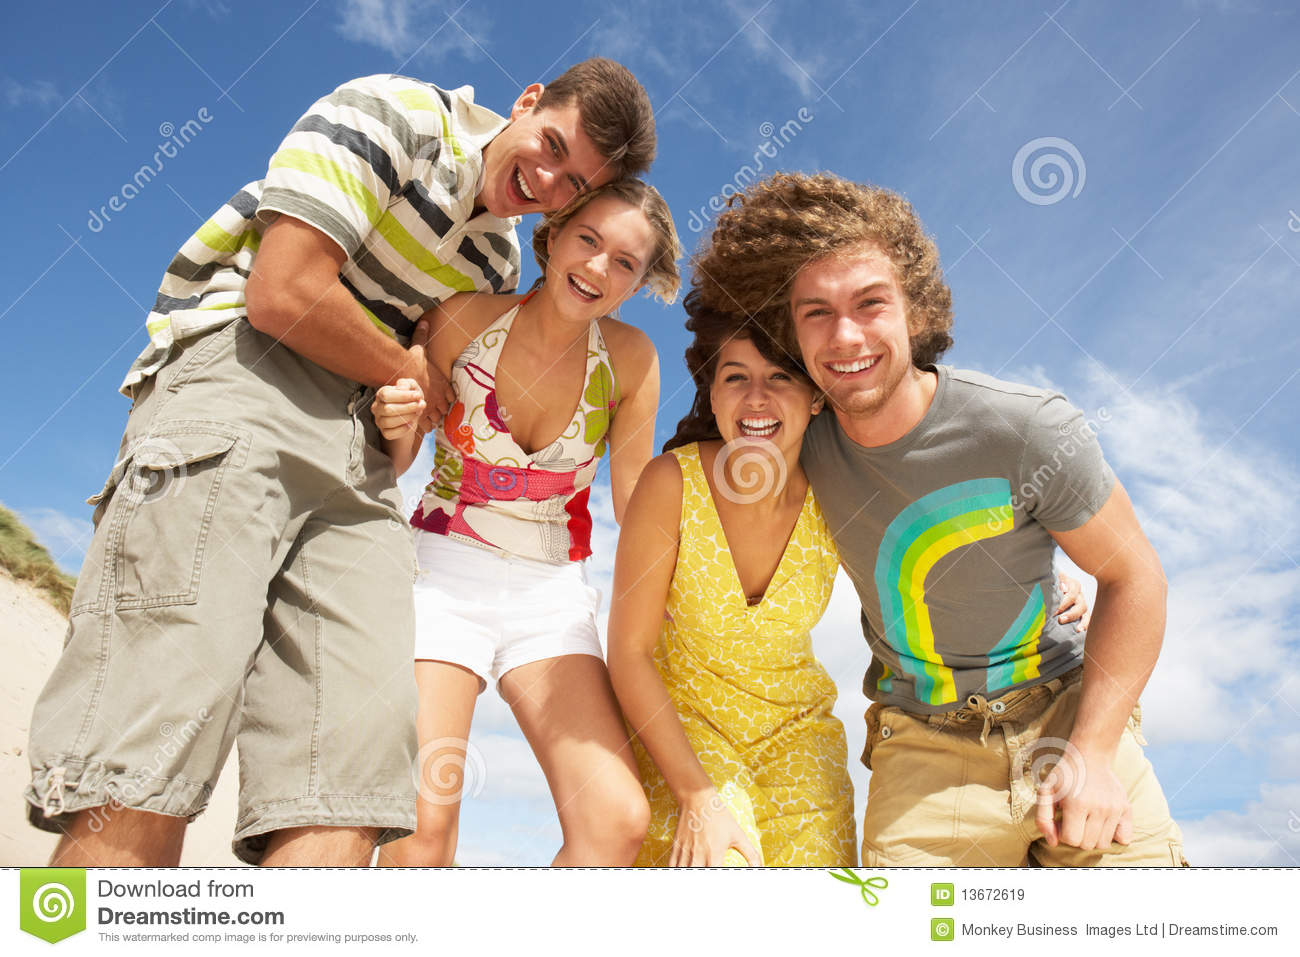 Group Of Friends Having Fun Stock Image - Image: 13672619